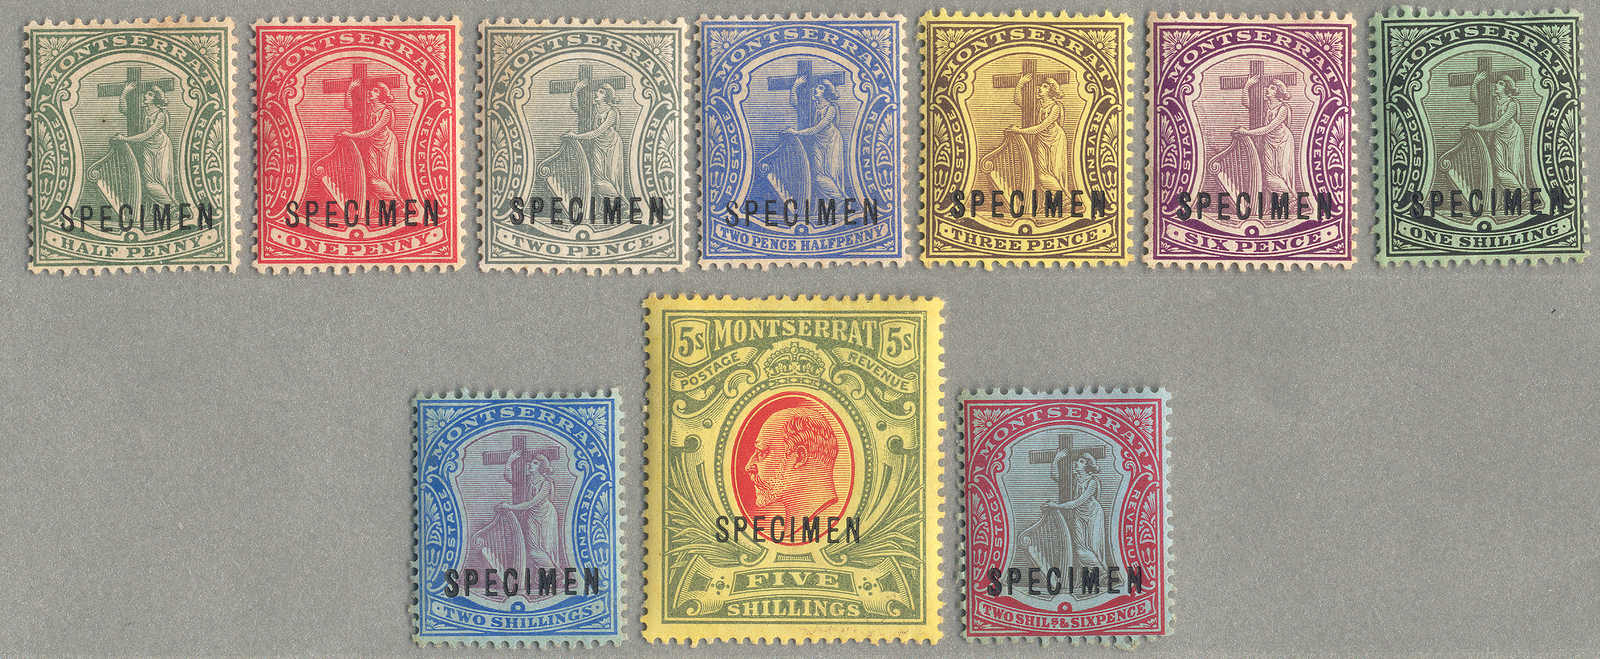 Lot 10615 - andere gebiete montserrat -  classicphil GmbH 6'th classicphil Auction - Day 1